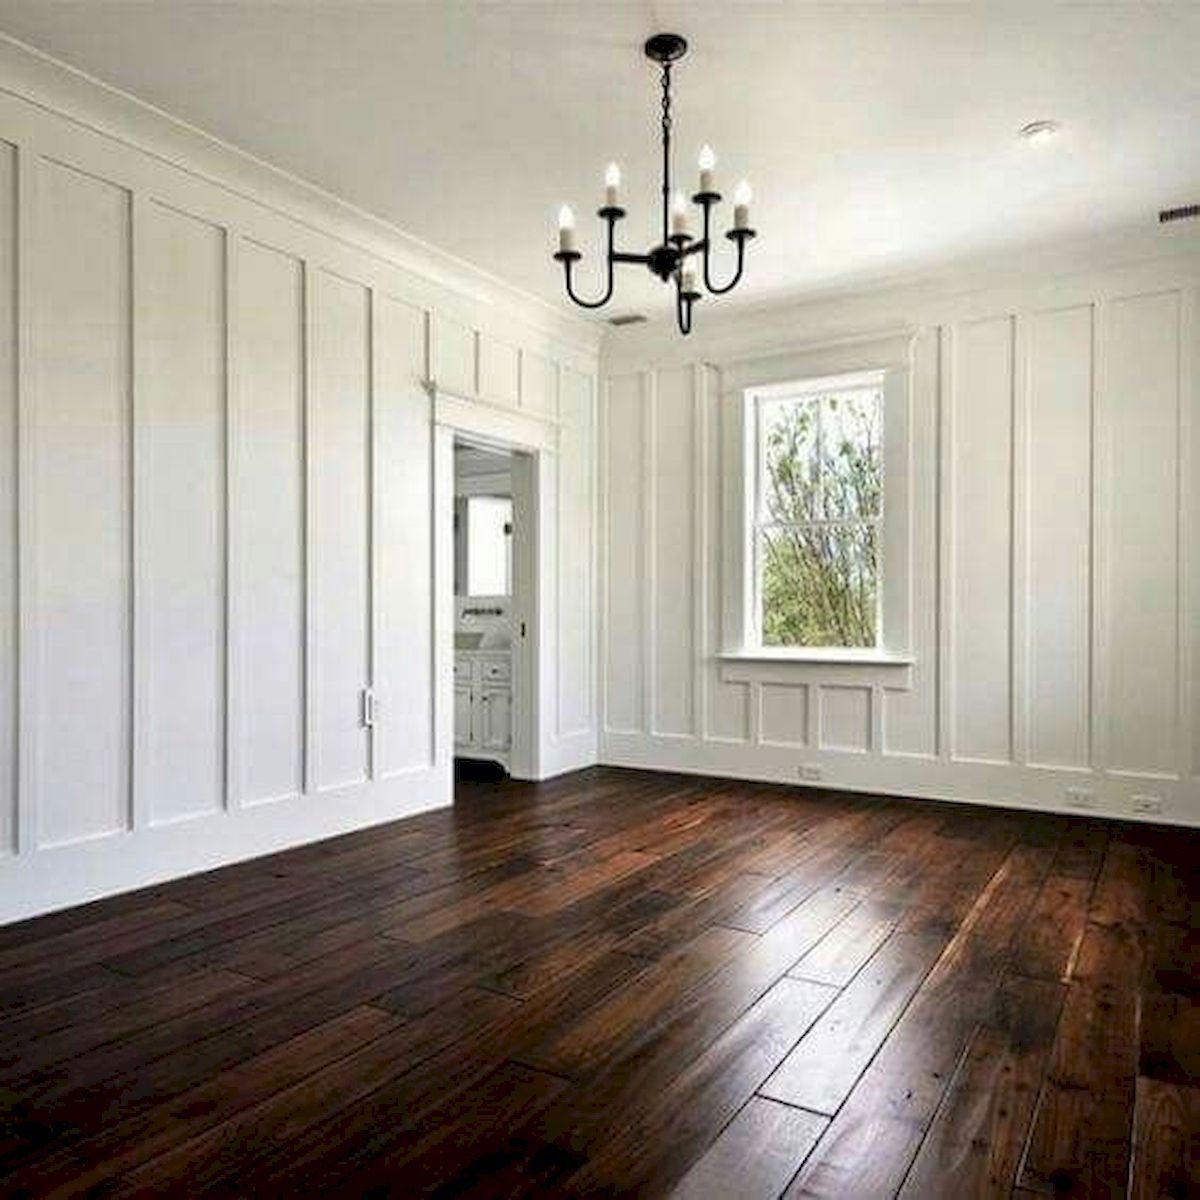 16 Enticing Wall Decorating Ideas For Your Living Room: 70 Farmhouse Wall Paneling Design Ideas For Living Room